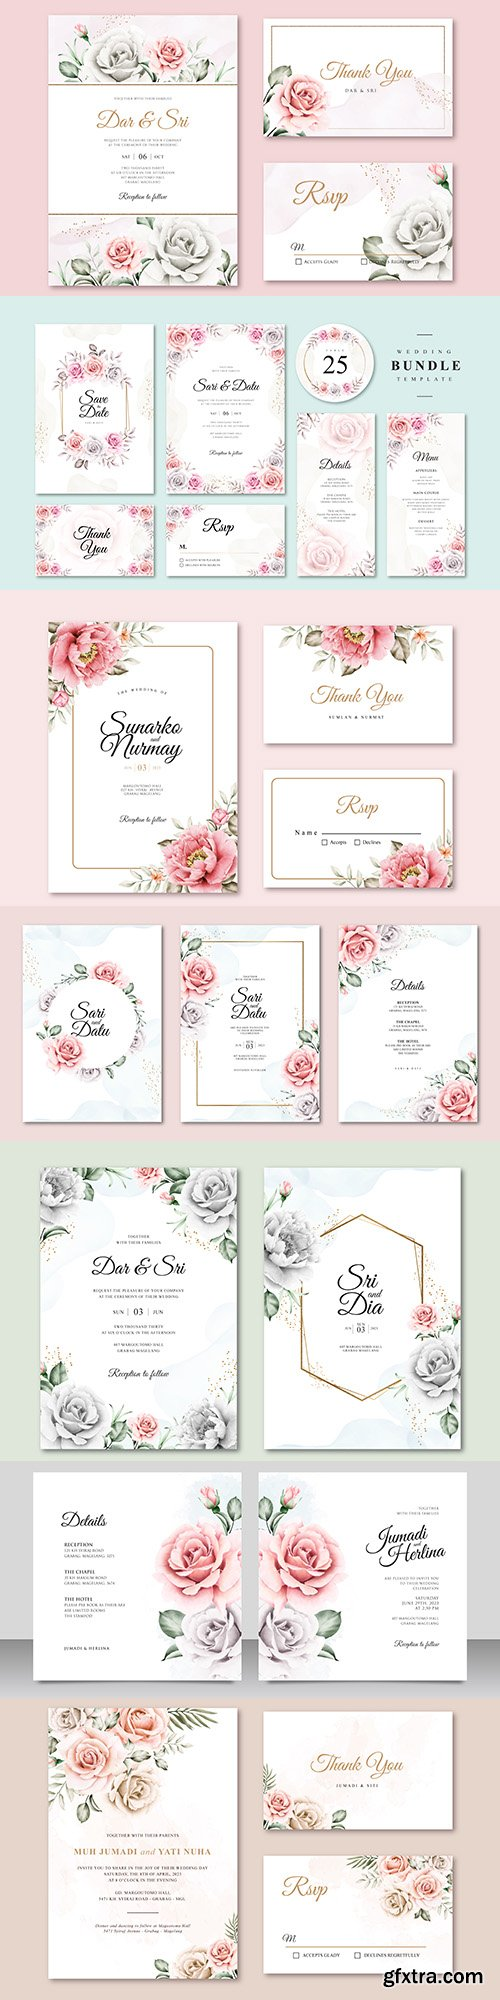 Wedding invitations floral elegant decorative template 6